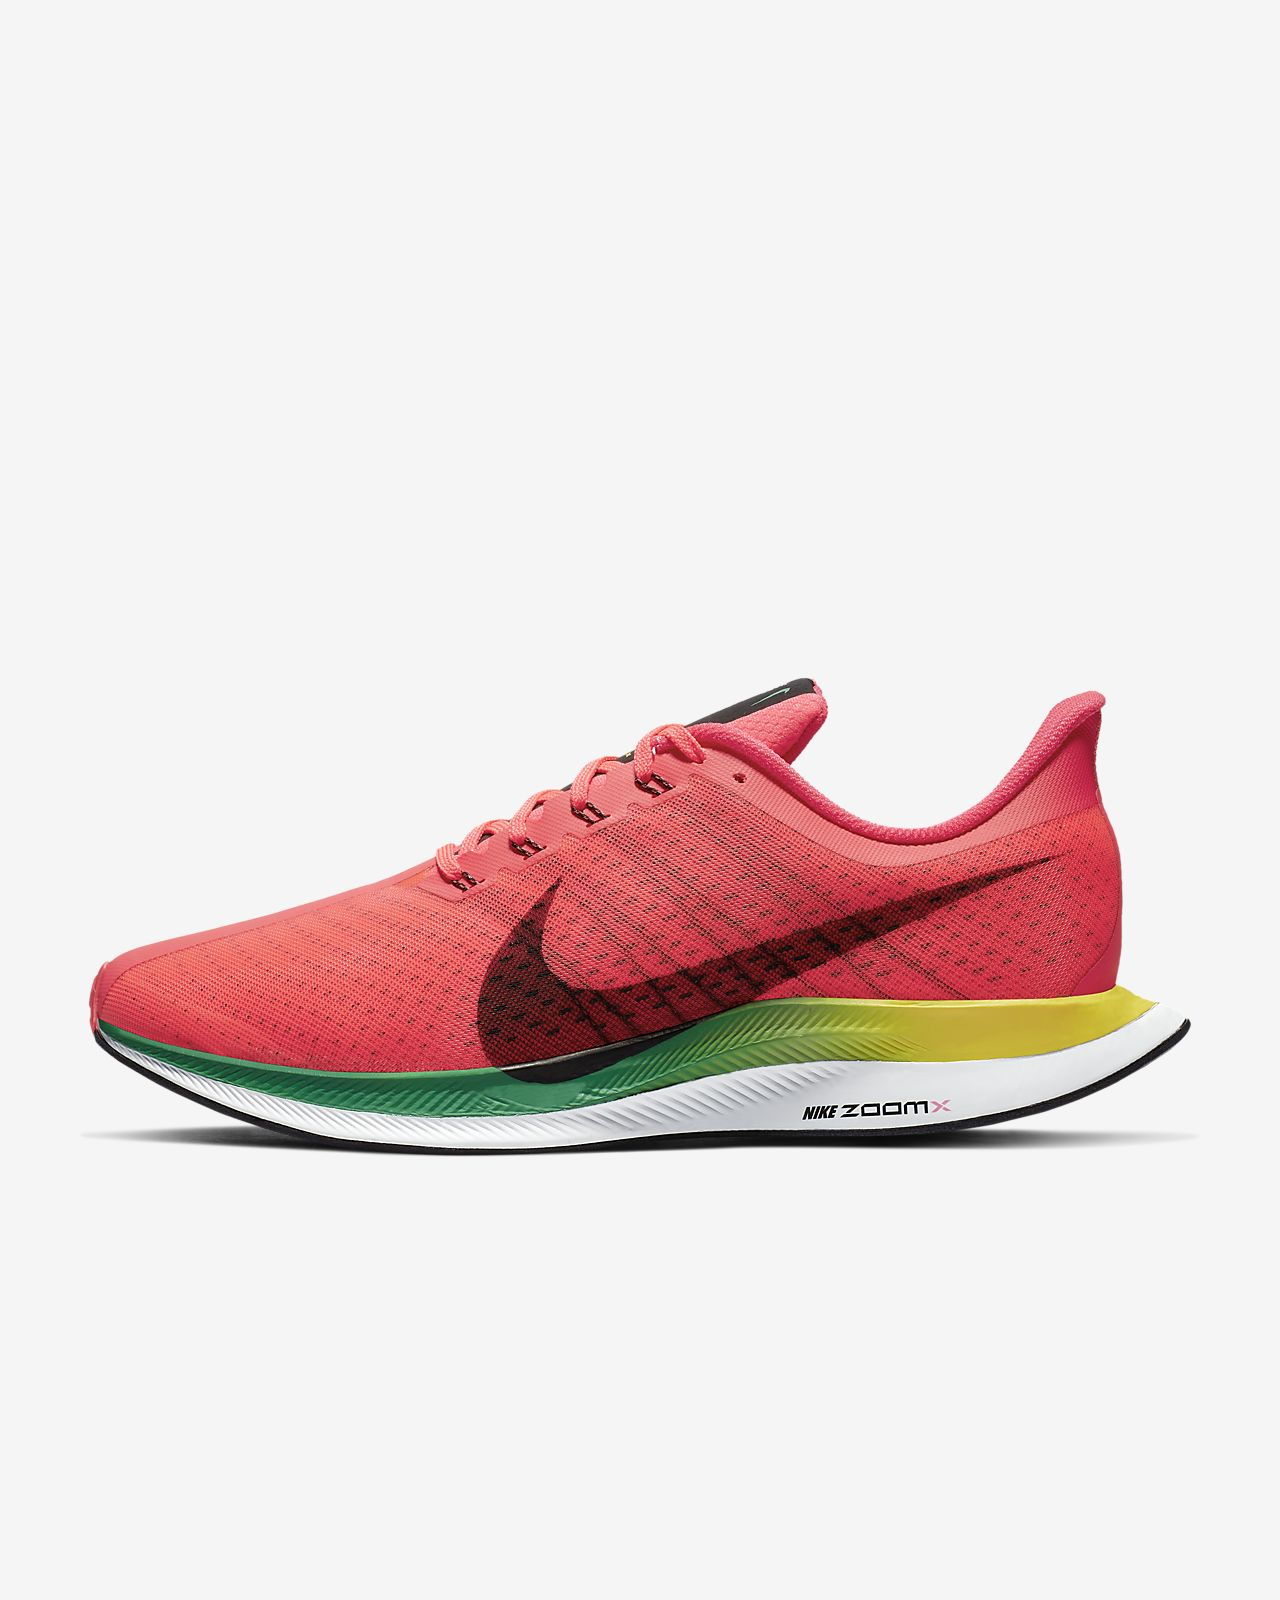 new concept 5dc5f 98082 ... Nike Zoom Pegasus Turbo Mens Running Shoe